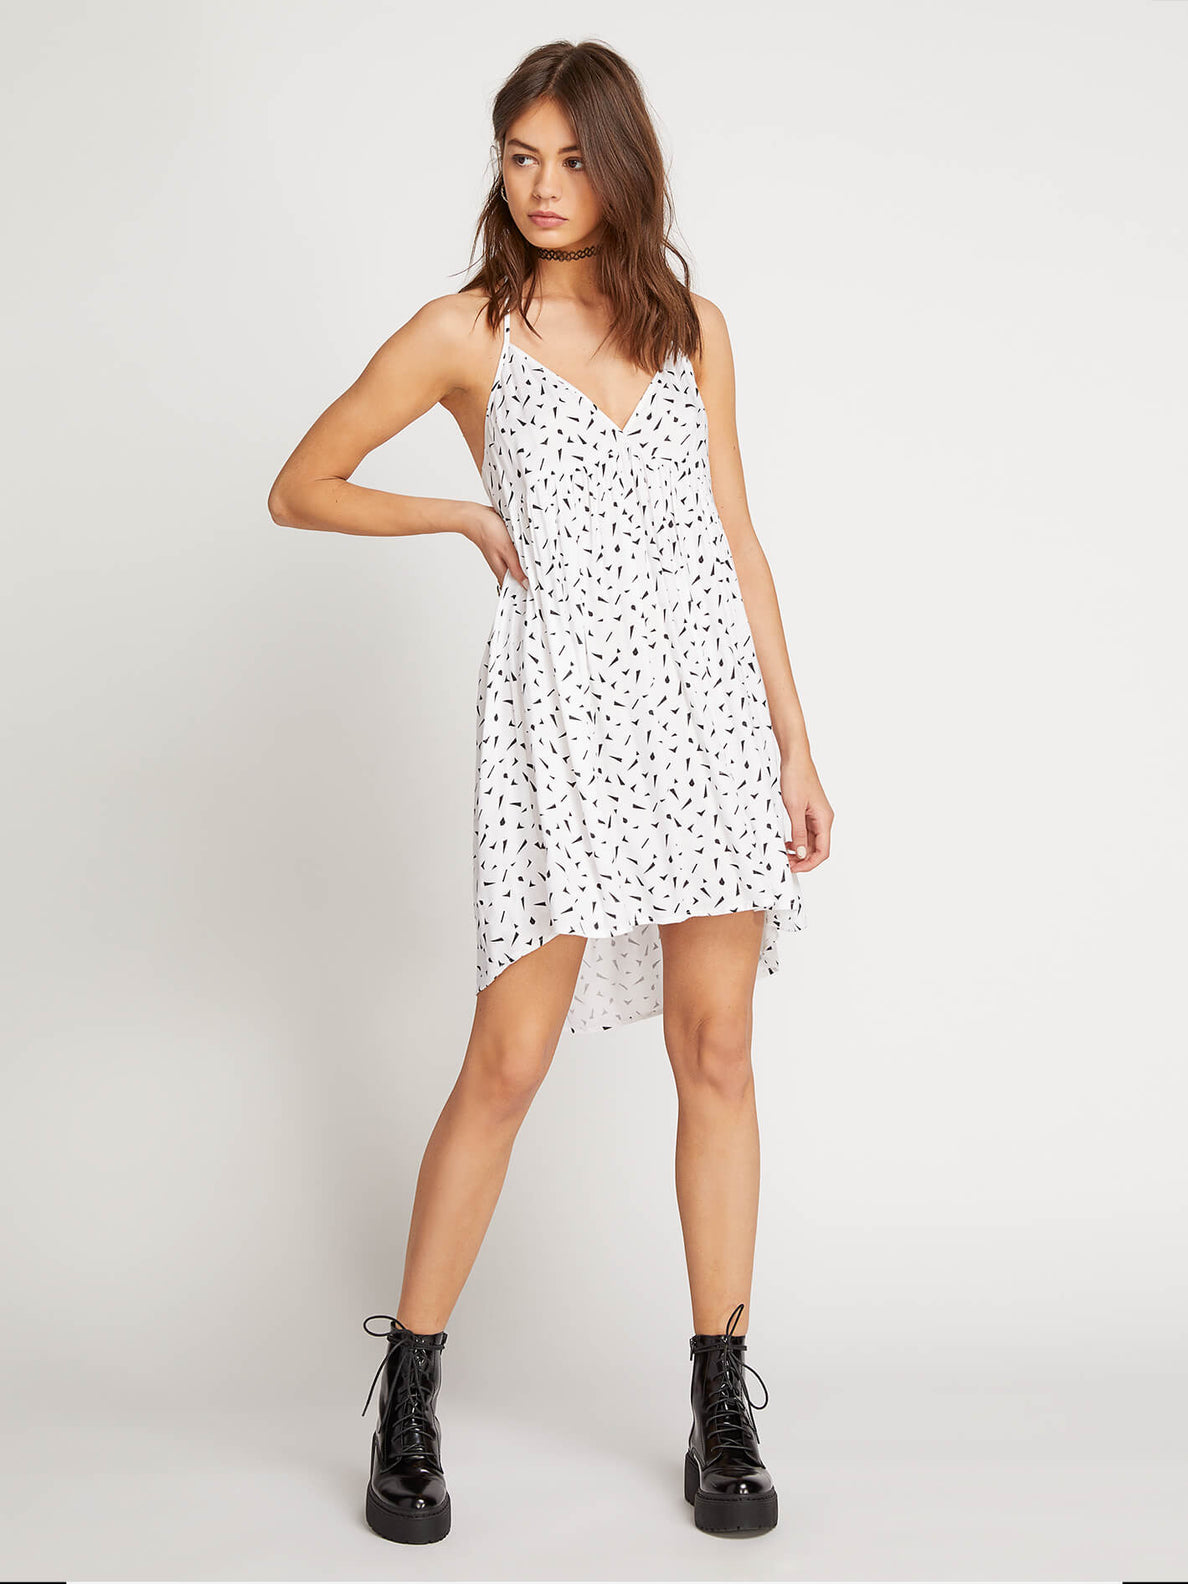 Vol Dot Com Dress In White, Front View